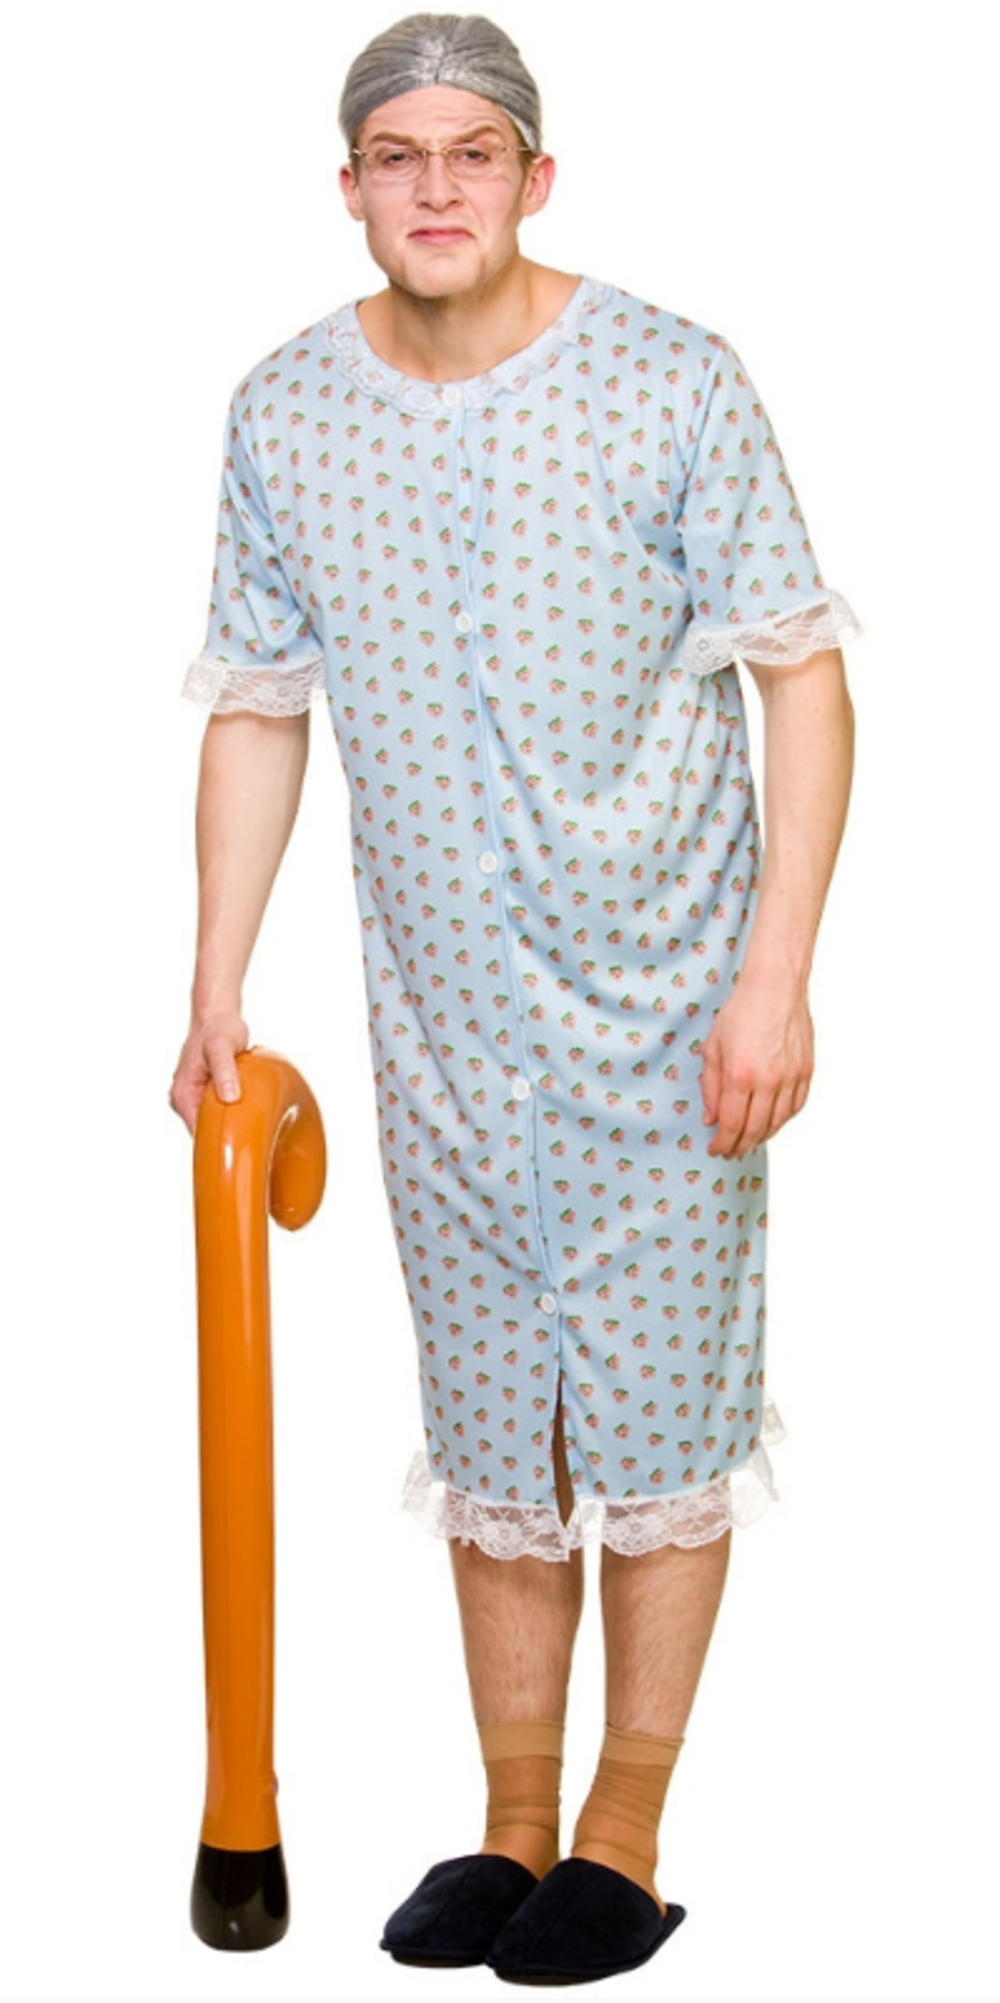 Granny Mens Fancy Dress Novelty Funny Humour Fairytale Stag Nanny  Adult Costume